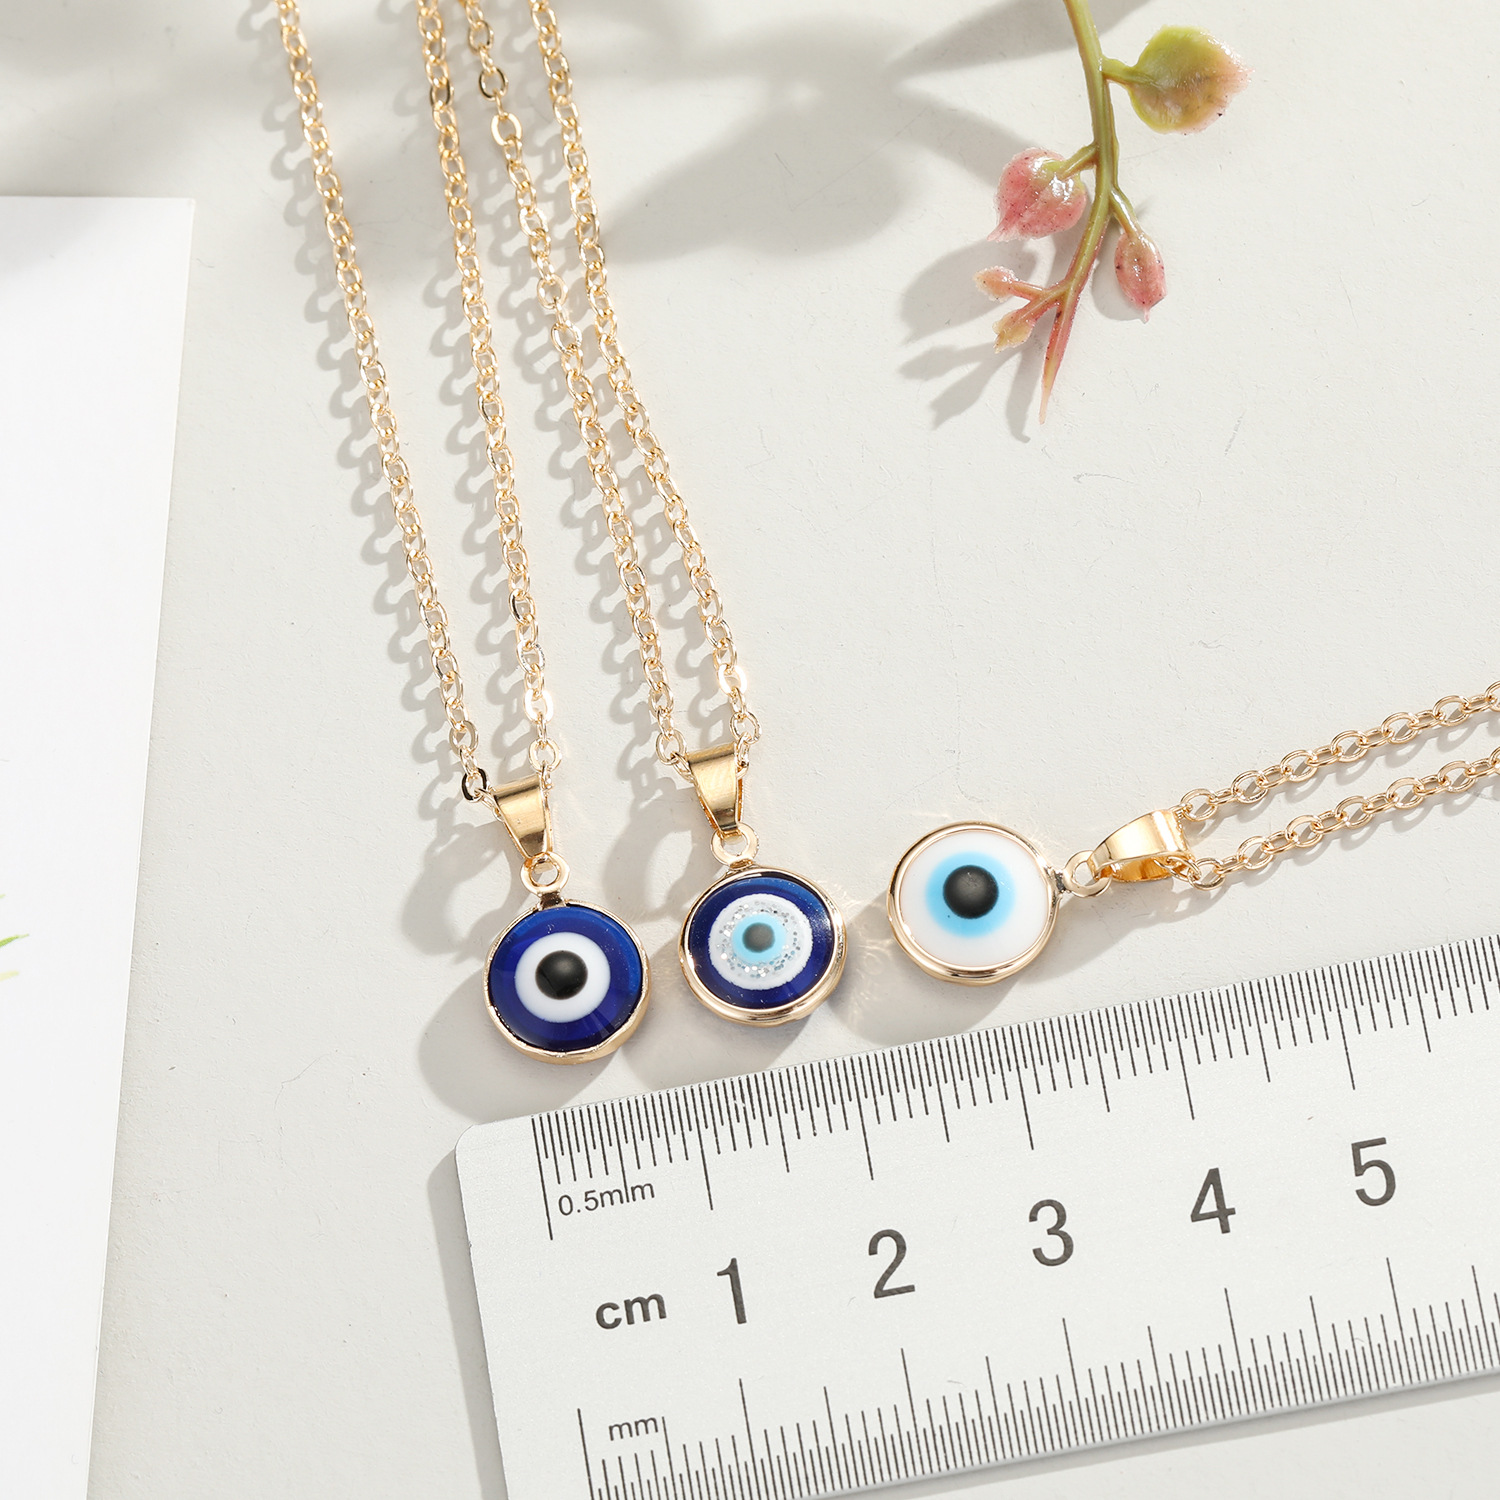 Turkish blue eyes pendant necklace nihaojewelry wholesale wild wrapping edge eyes necklace ladies  accessories NHGO218137